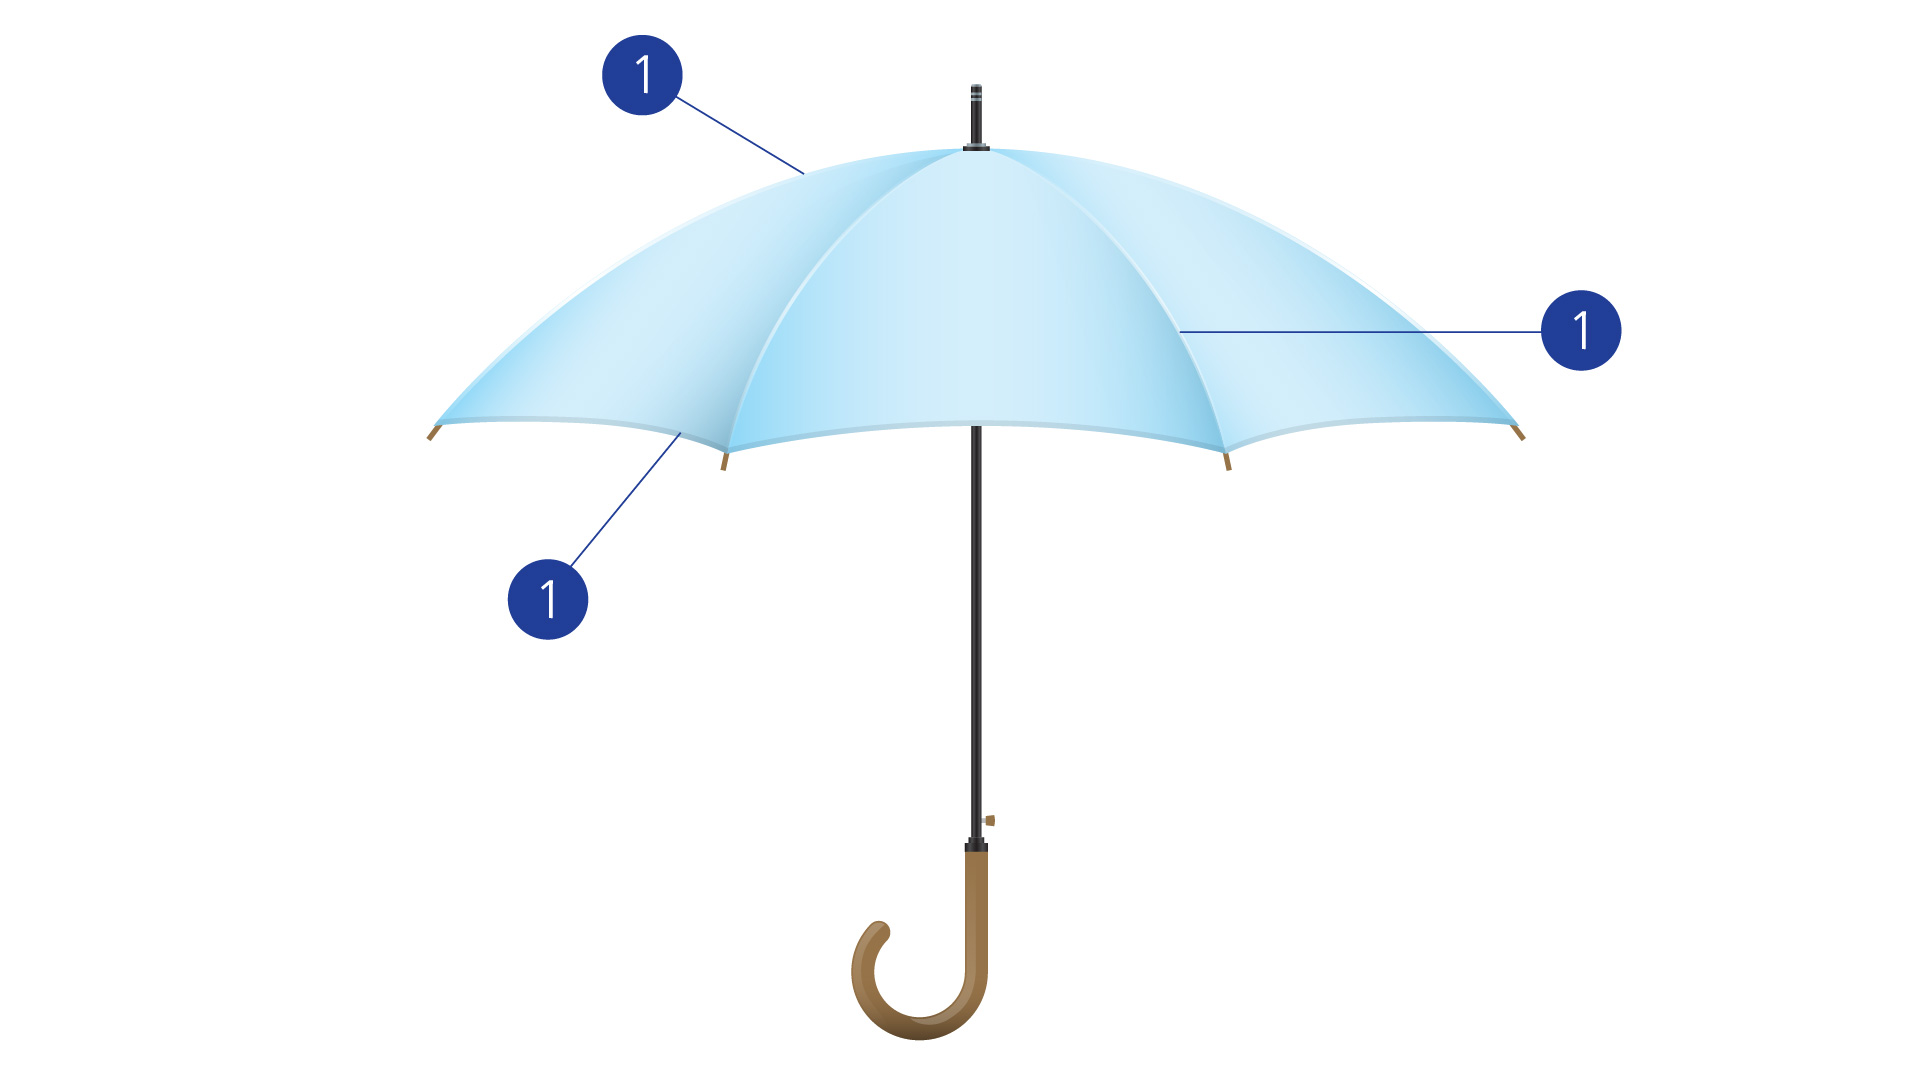 Umbrellas diagram